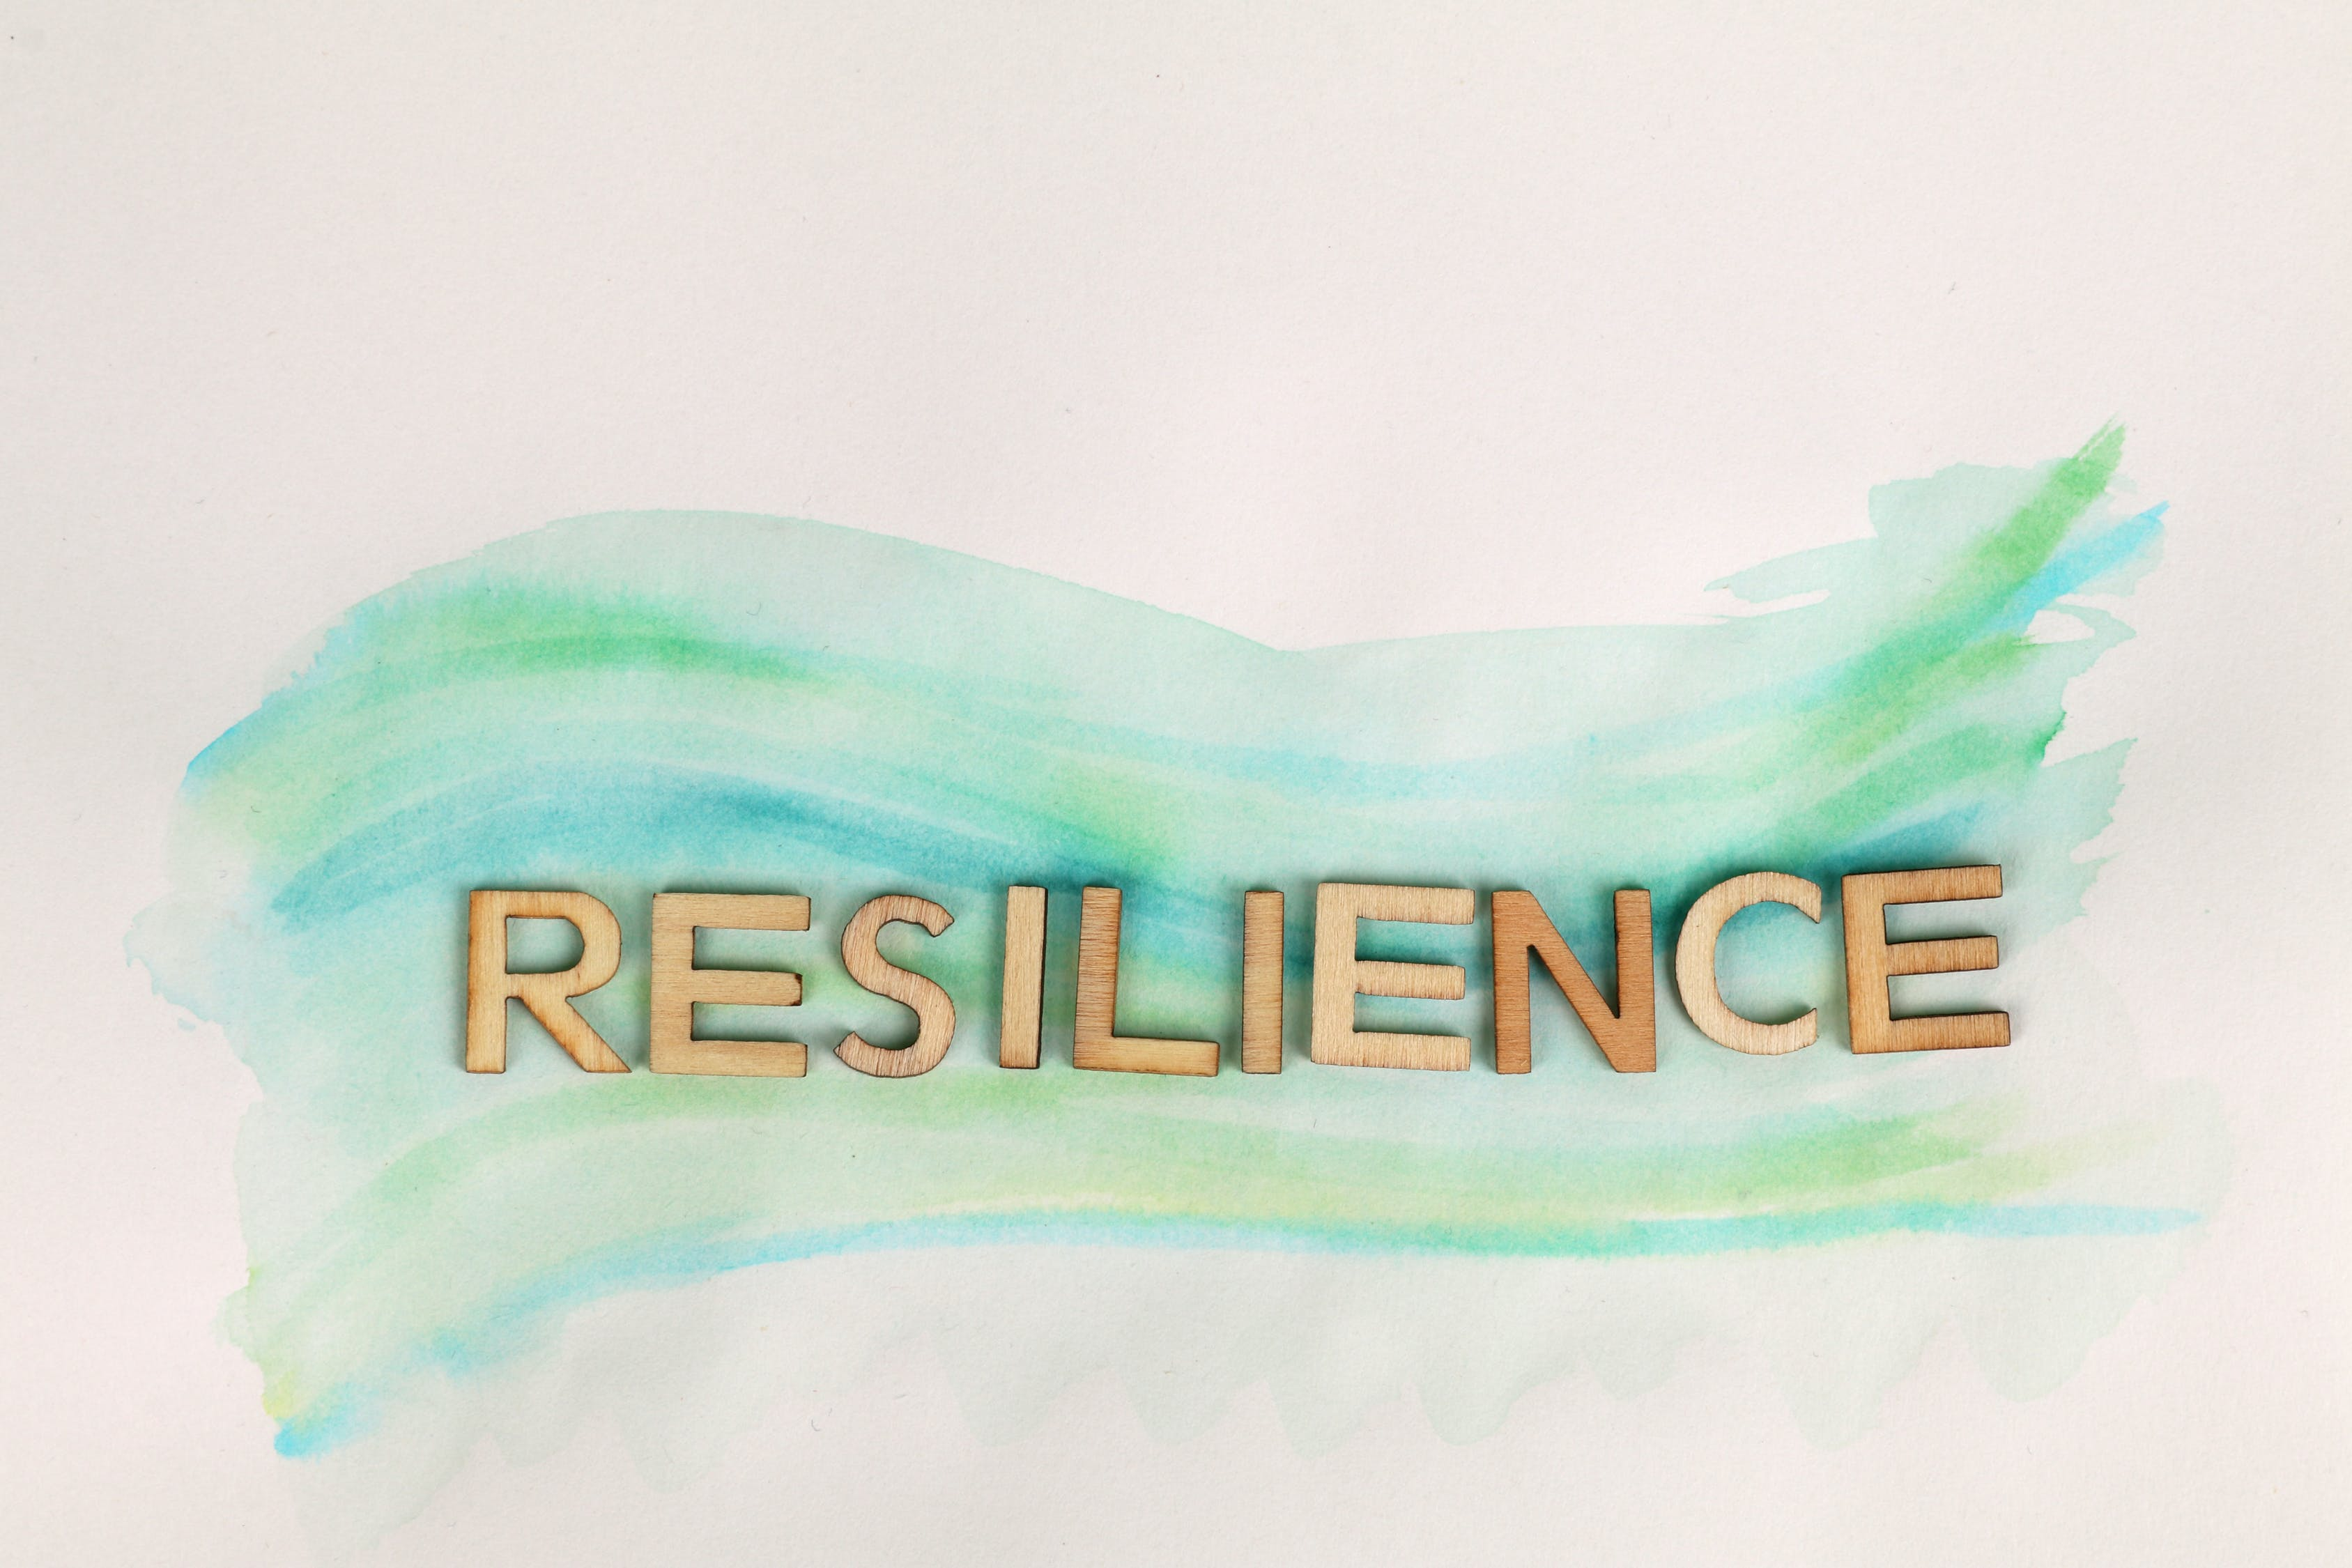 The word 'RESILIENCE' in wood letters on a paper background painted with blue watercolor. Photo used courtesy of pexels.com.